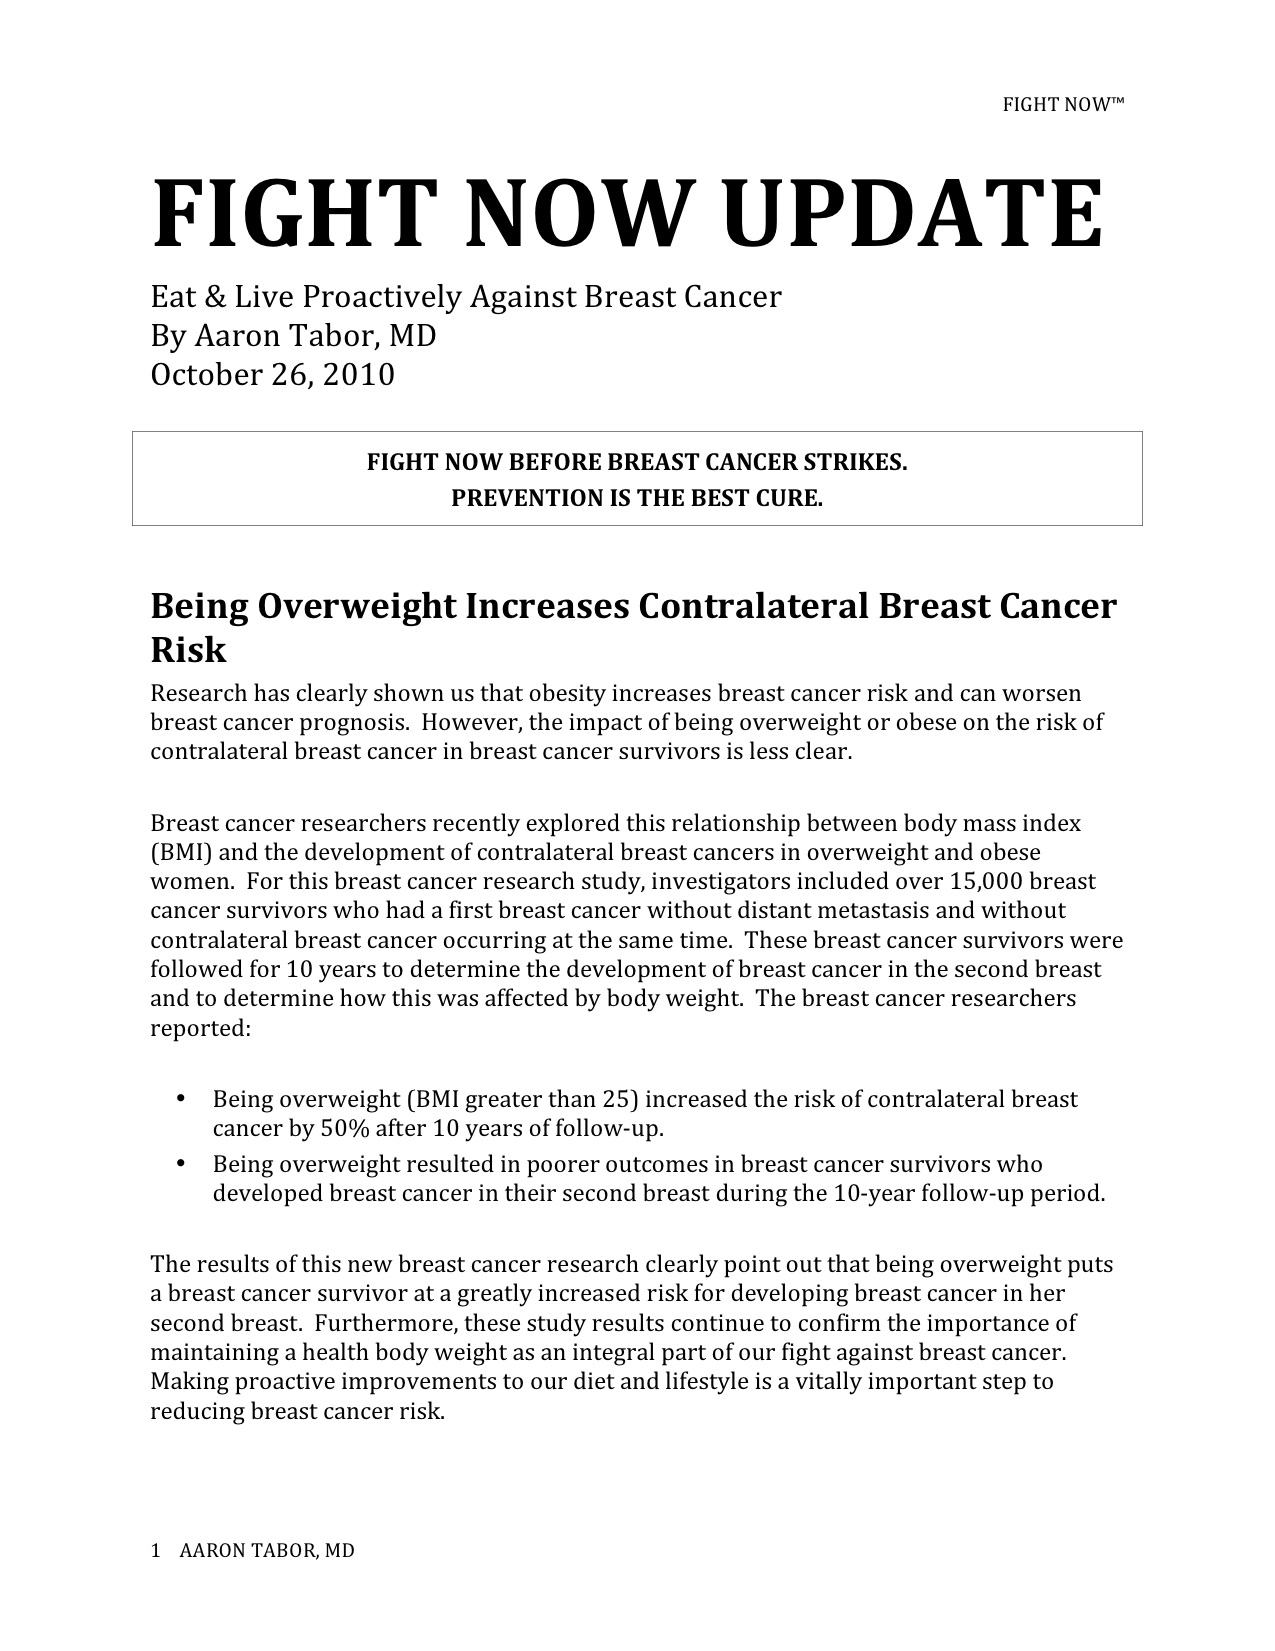 Fight Now Breast Cancer Newsletter - Oct 26th 2010